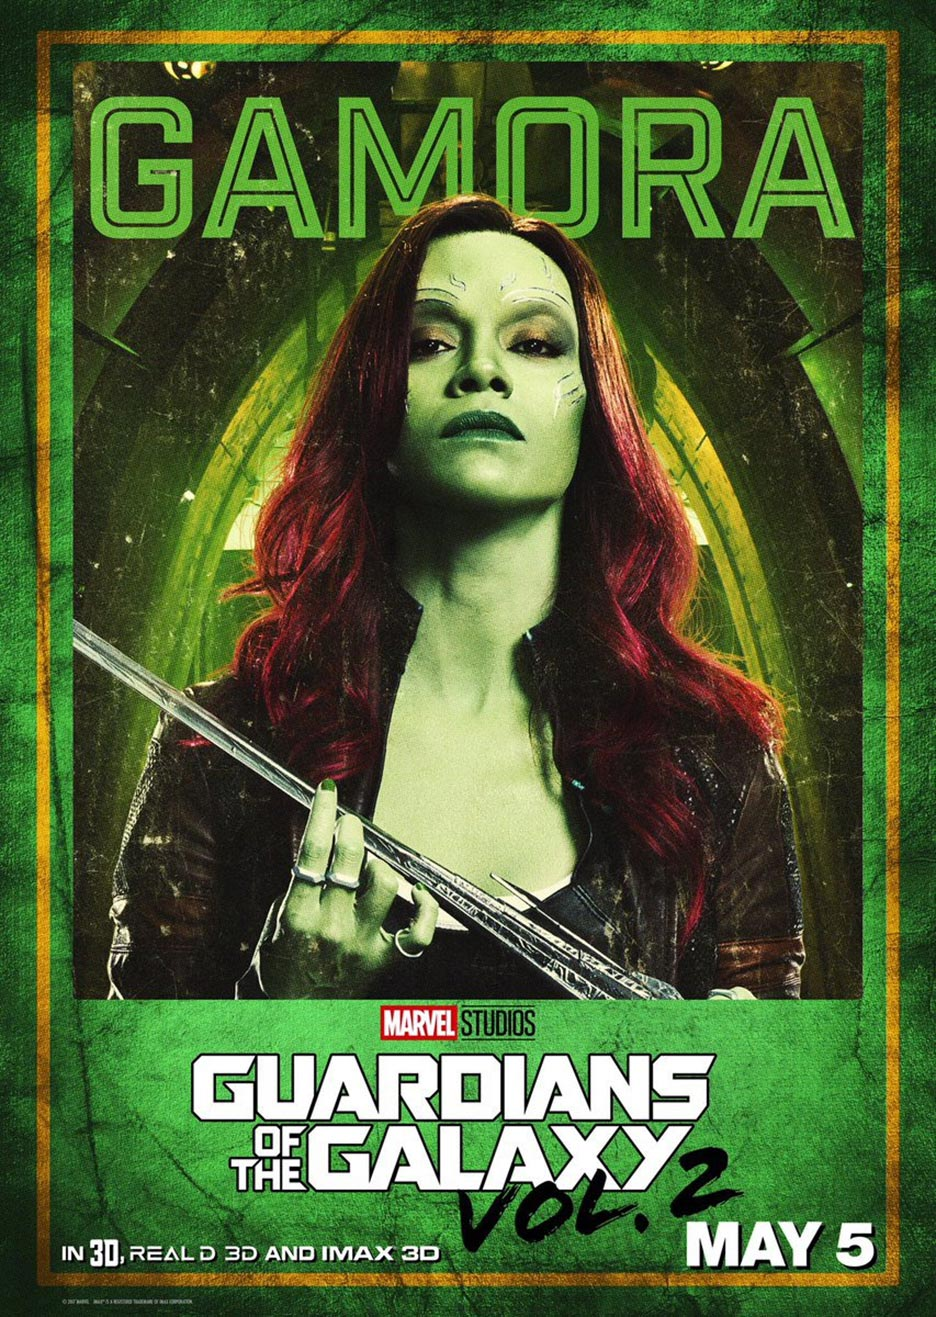 Guardians of the Galaxy Vol. 2 Poster #7